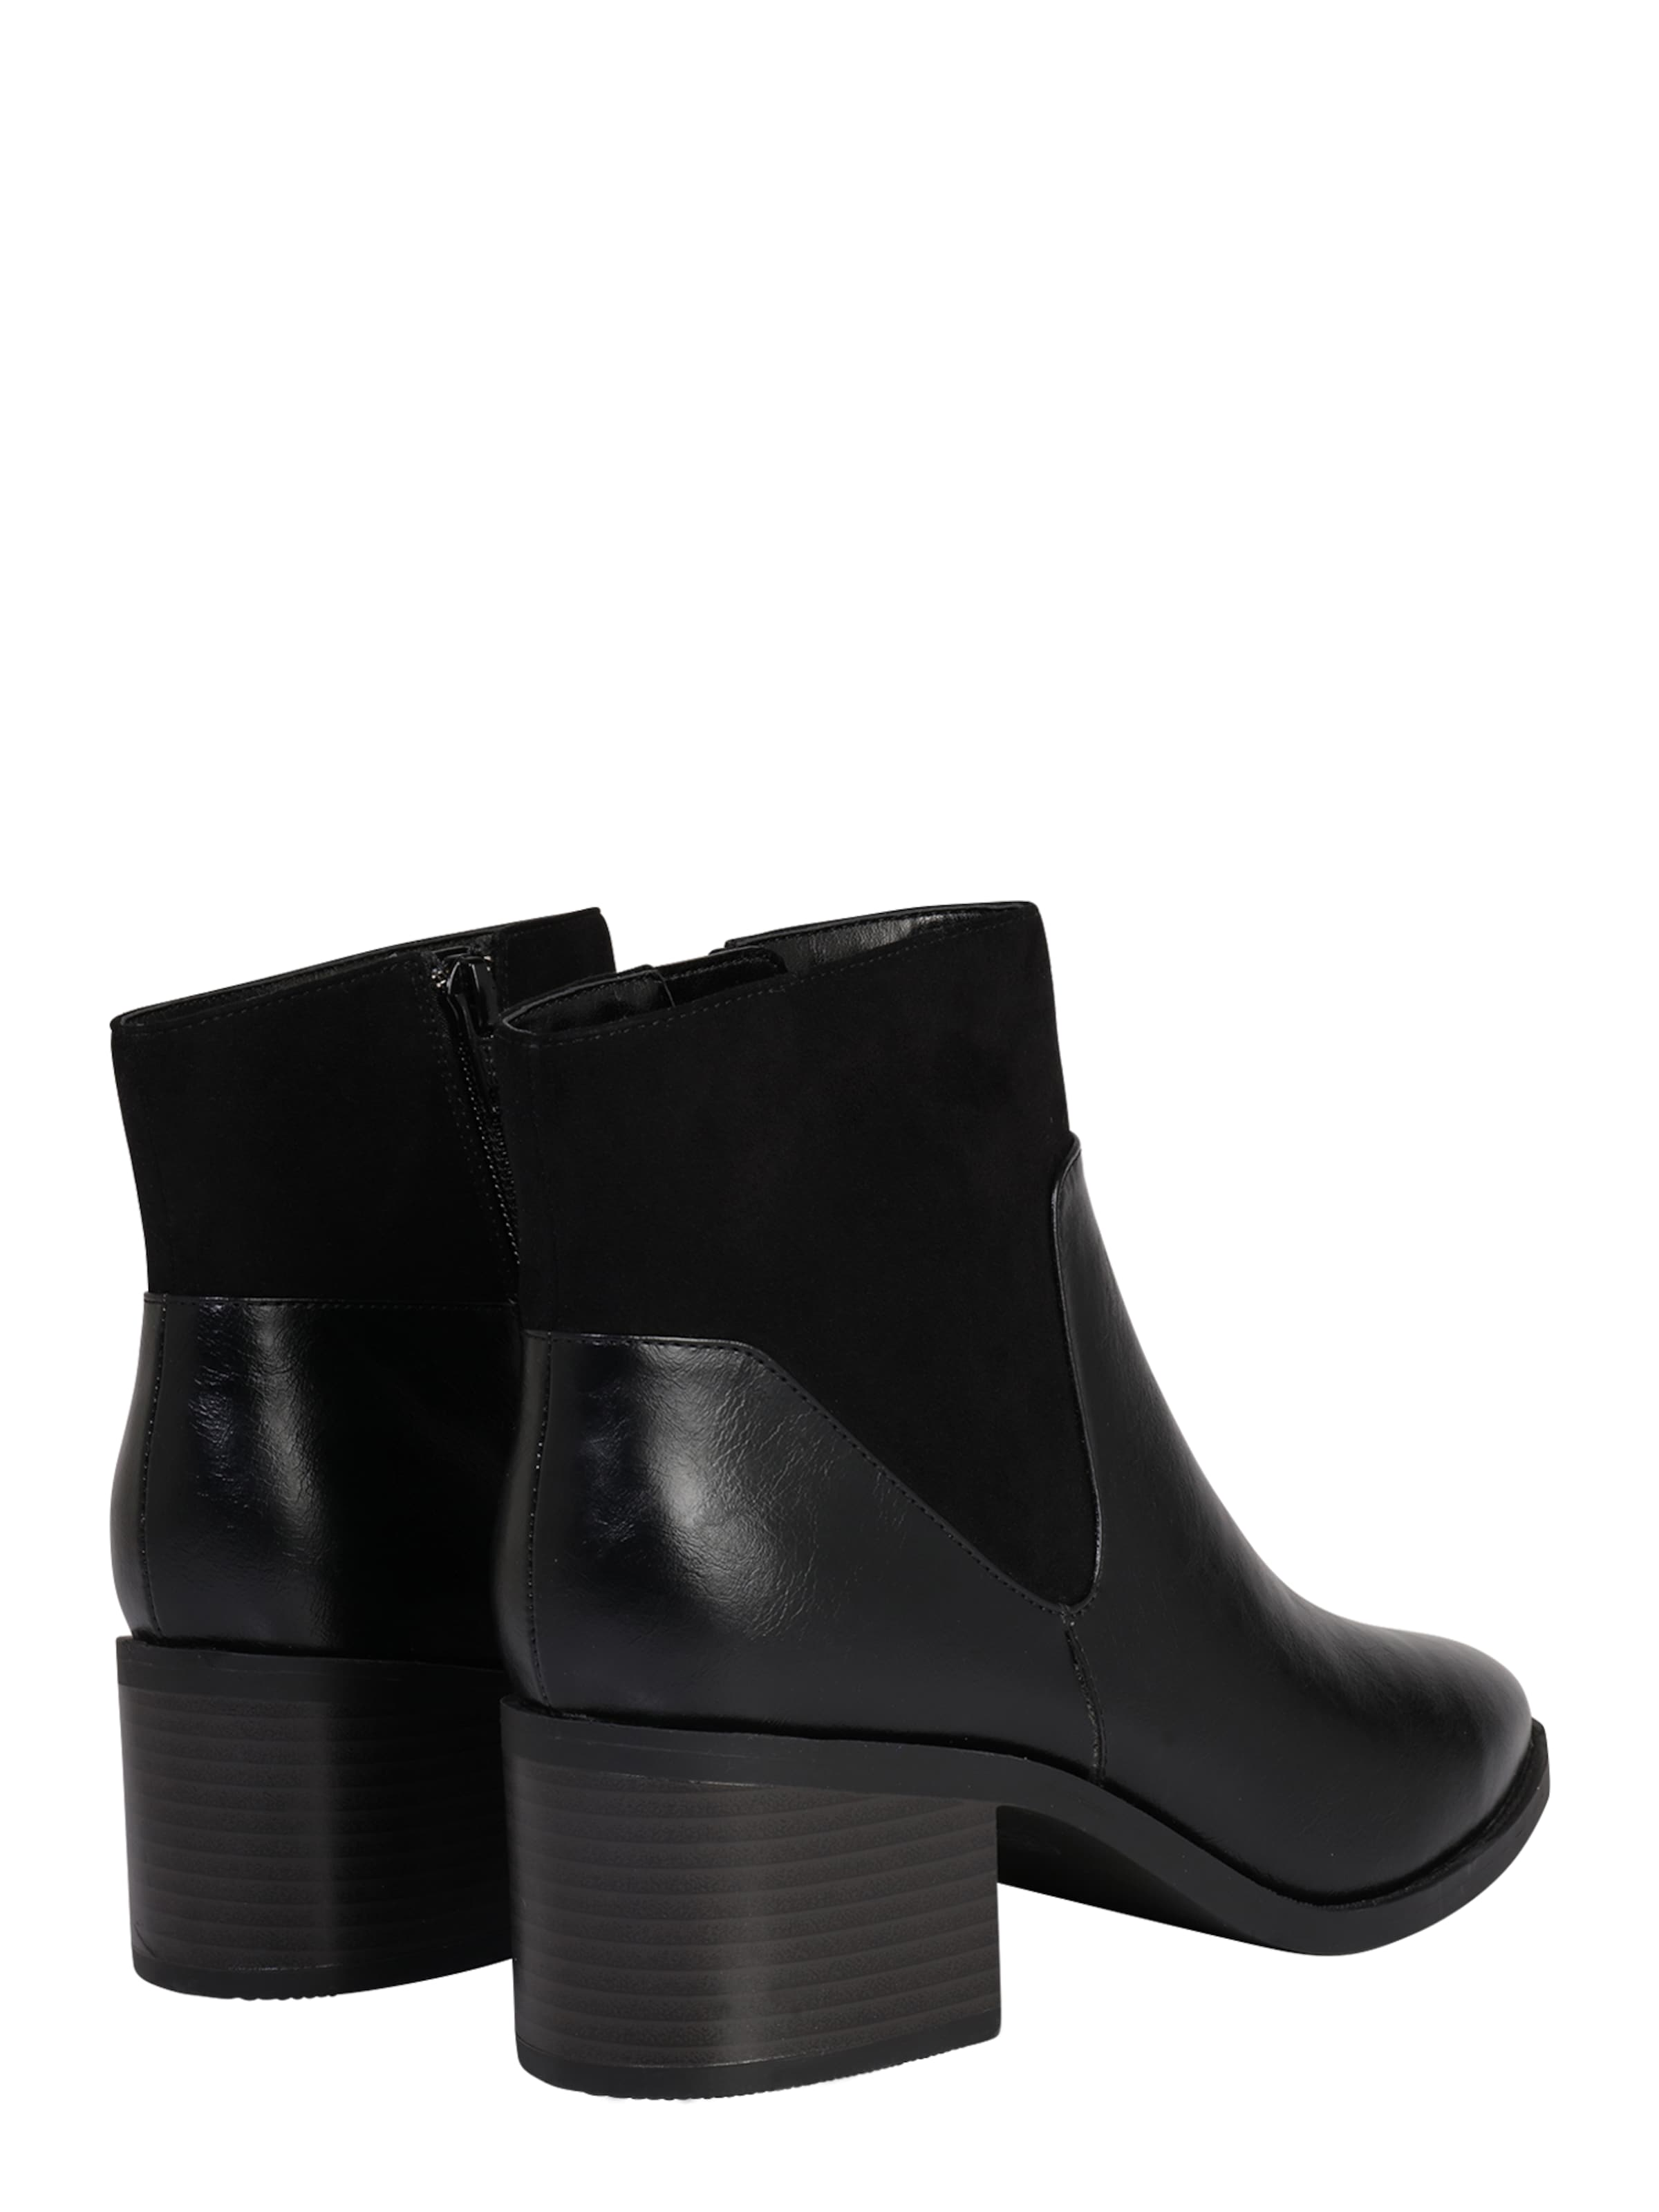 About Noir 'miray' You En Bottines dsBhQrCxt